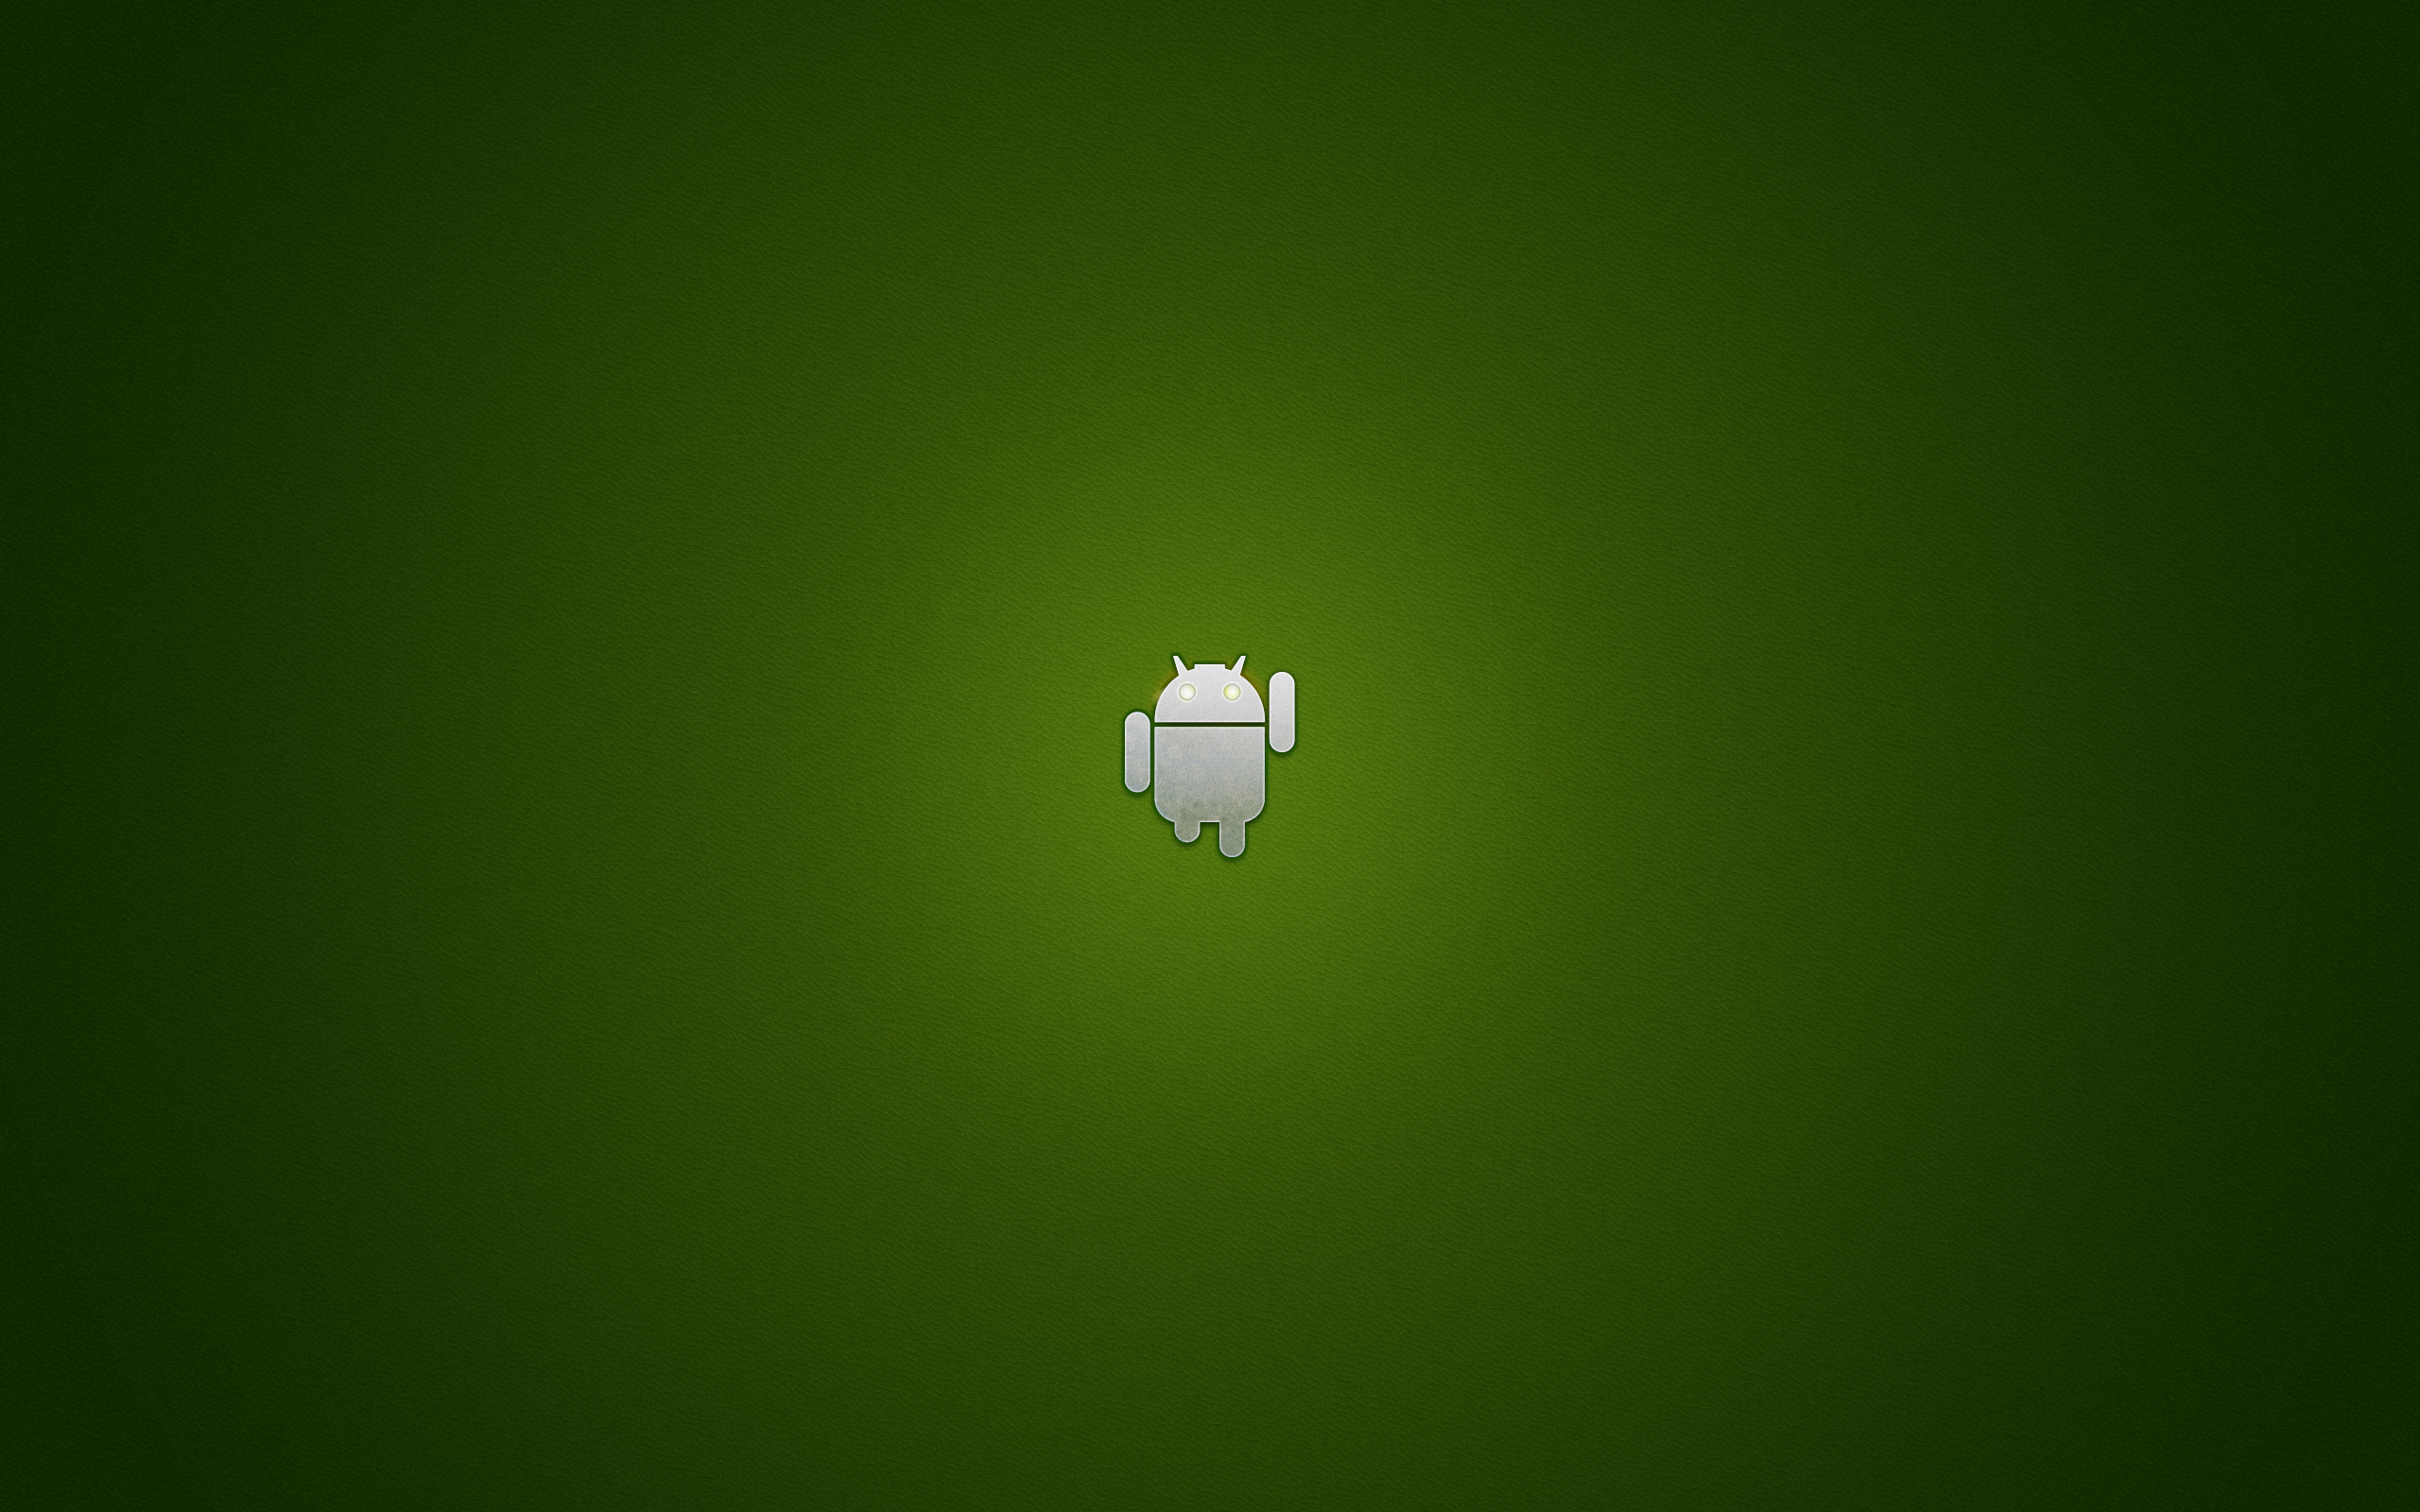 android green wallpaperspikepass on deviantart